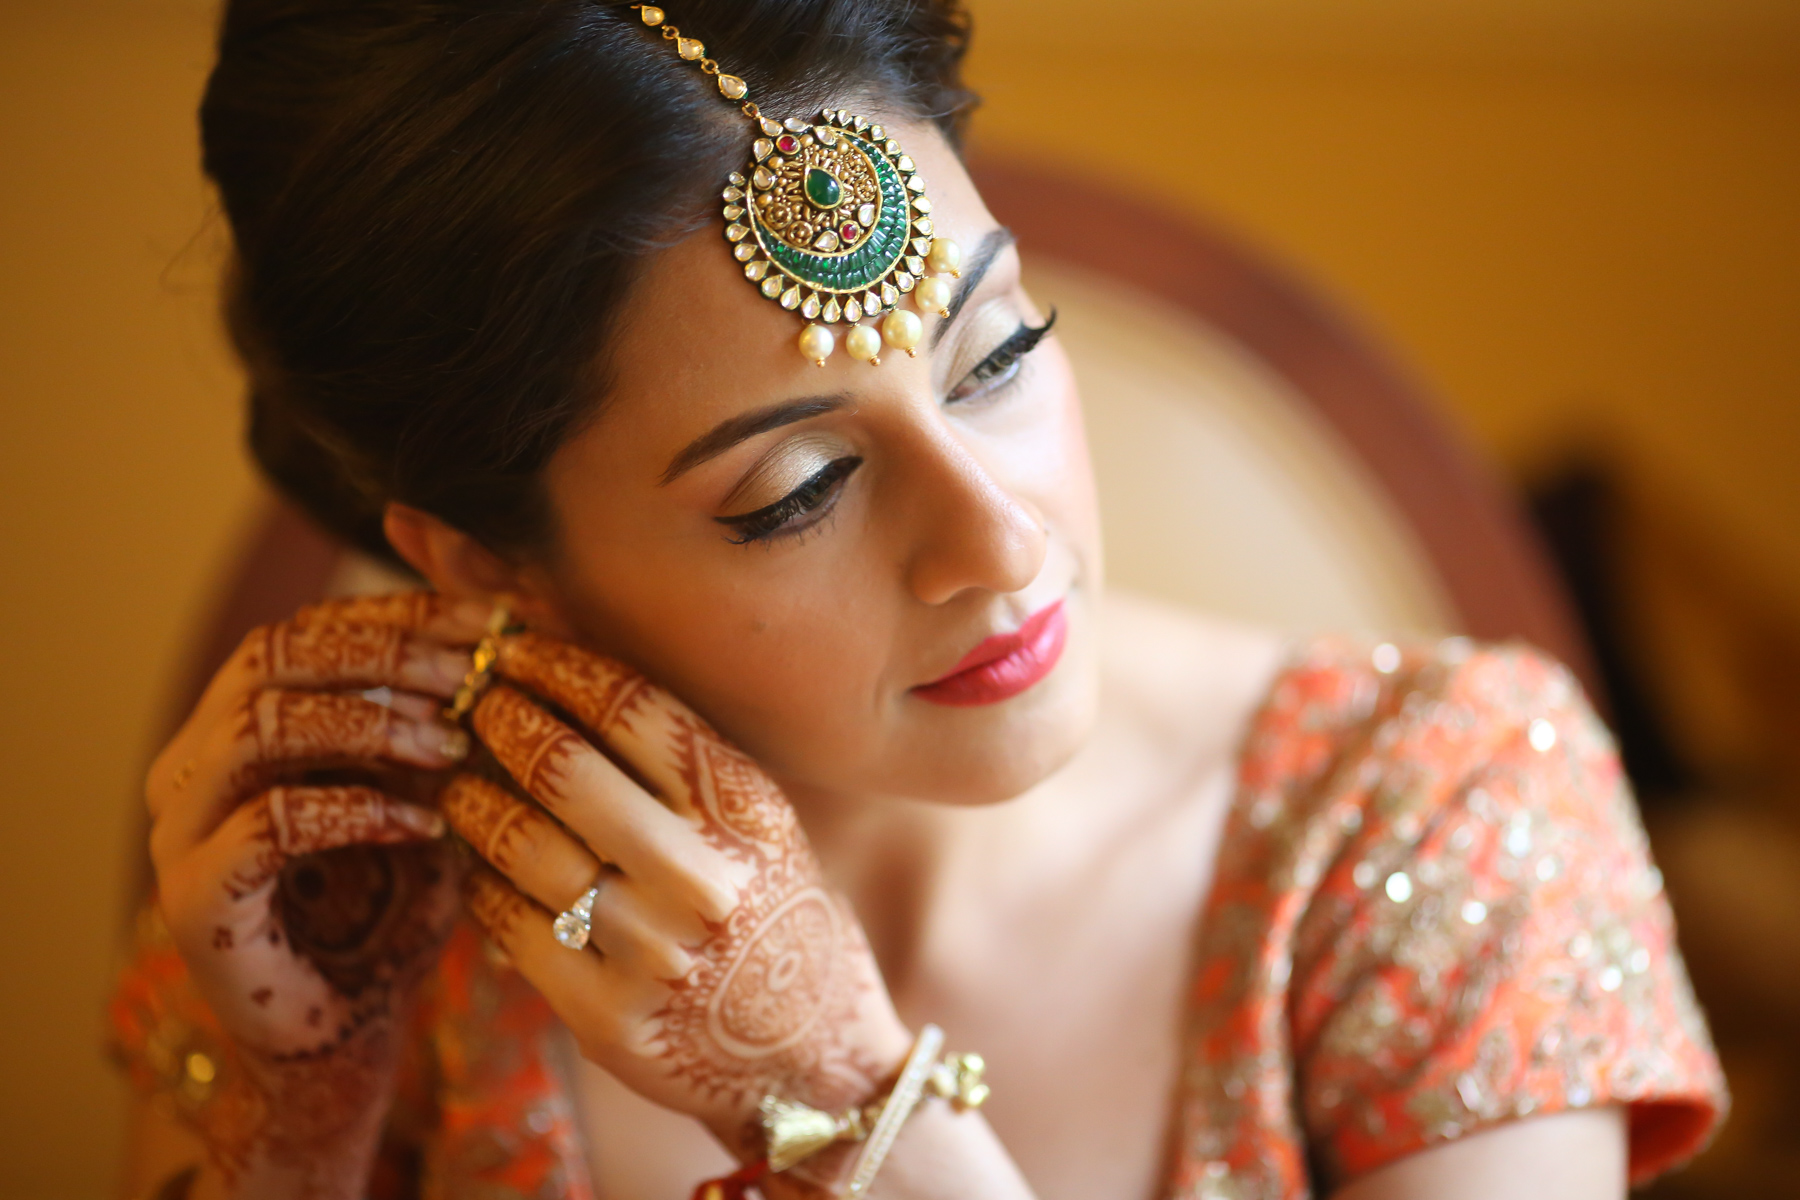 indian-south-asian-wedding-getting-ready-details-36.jpg